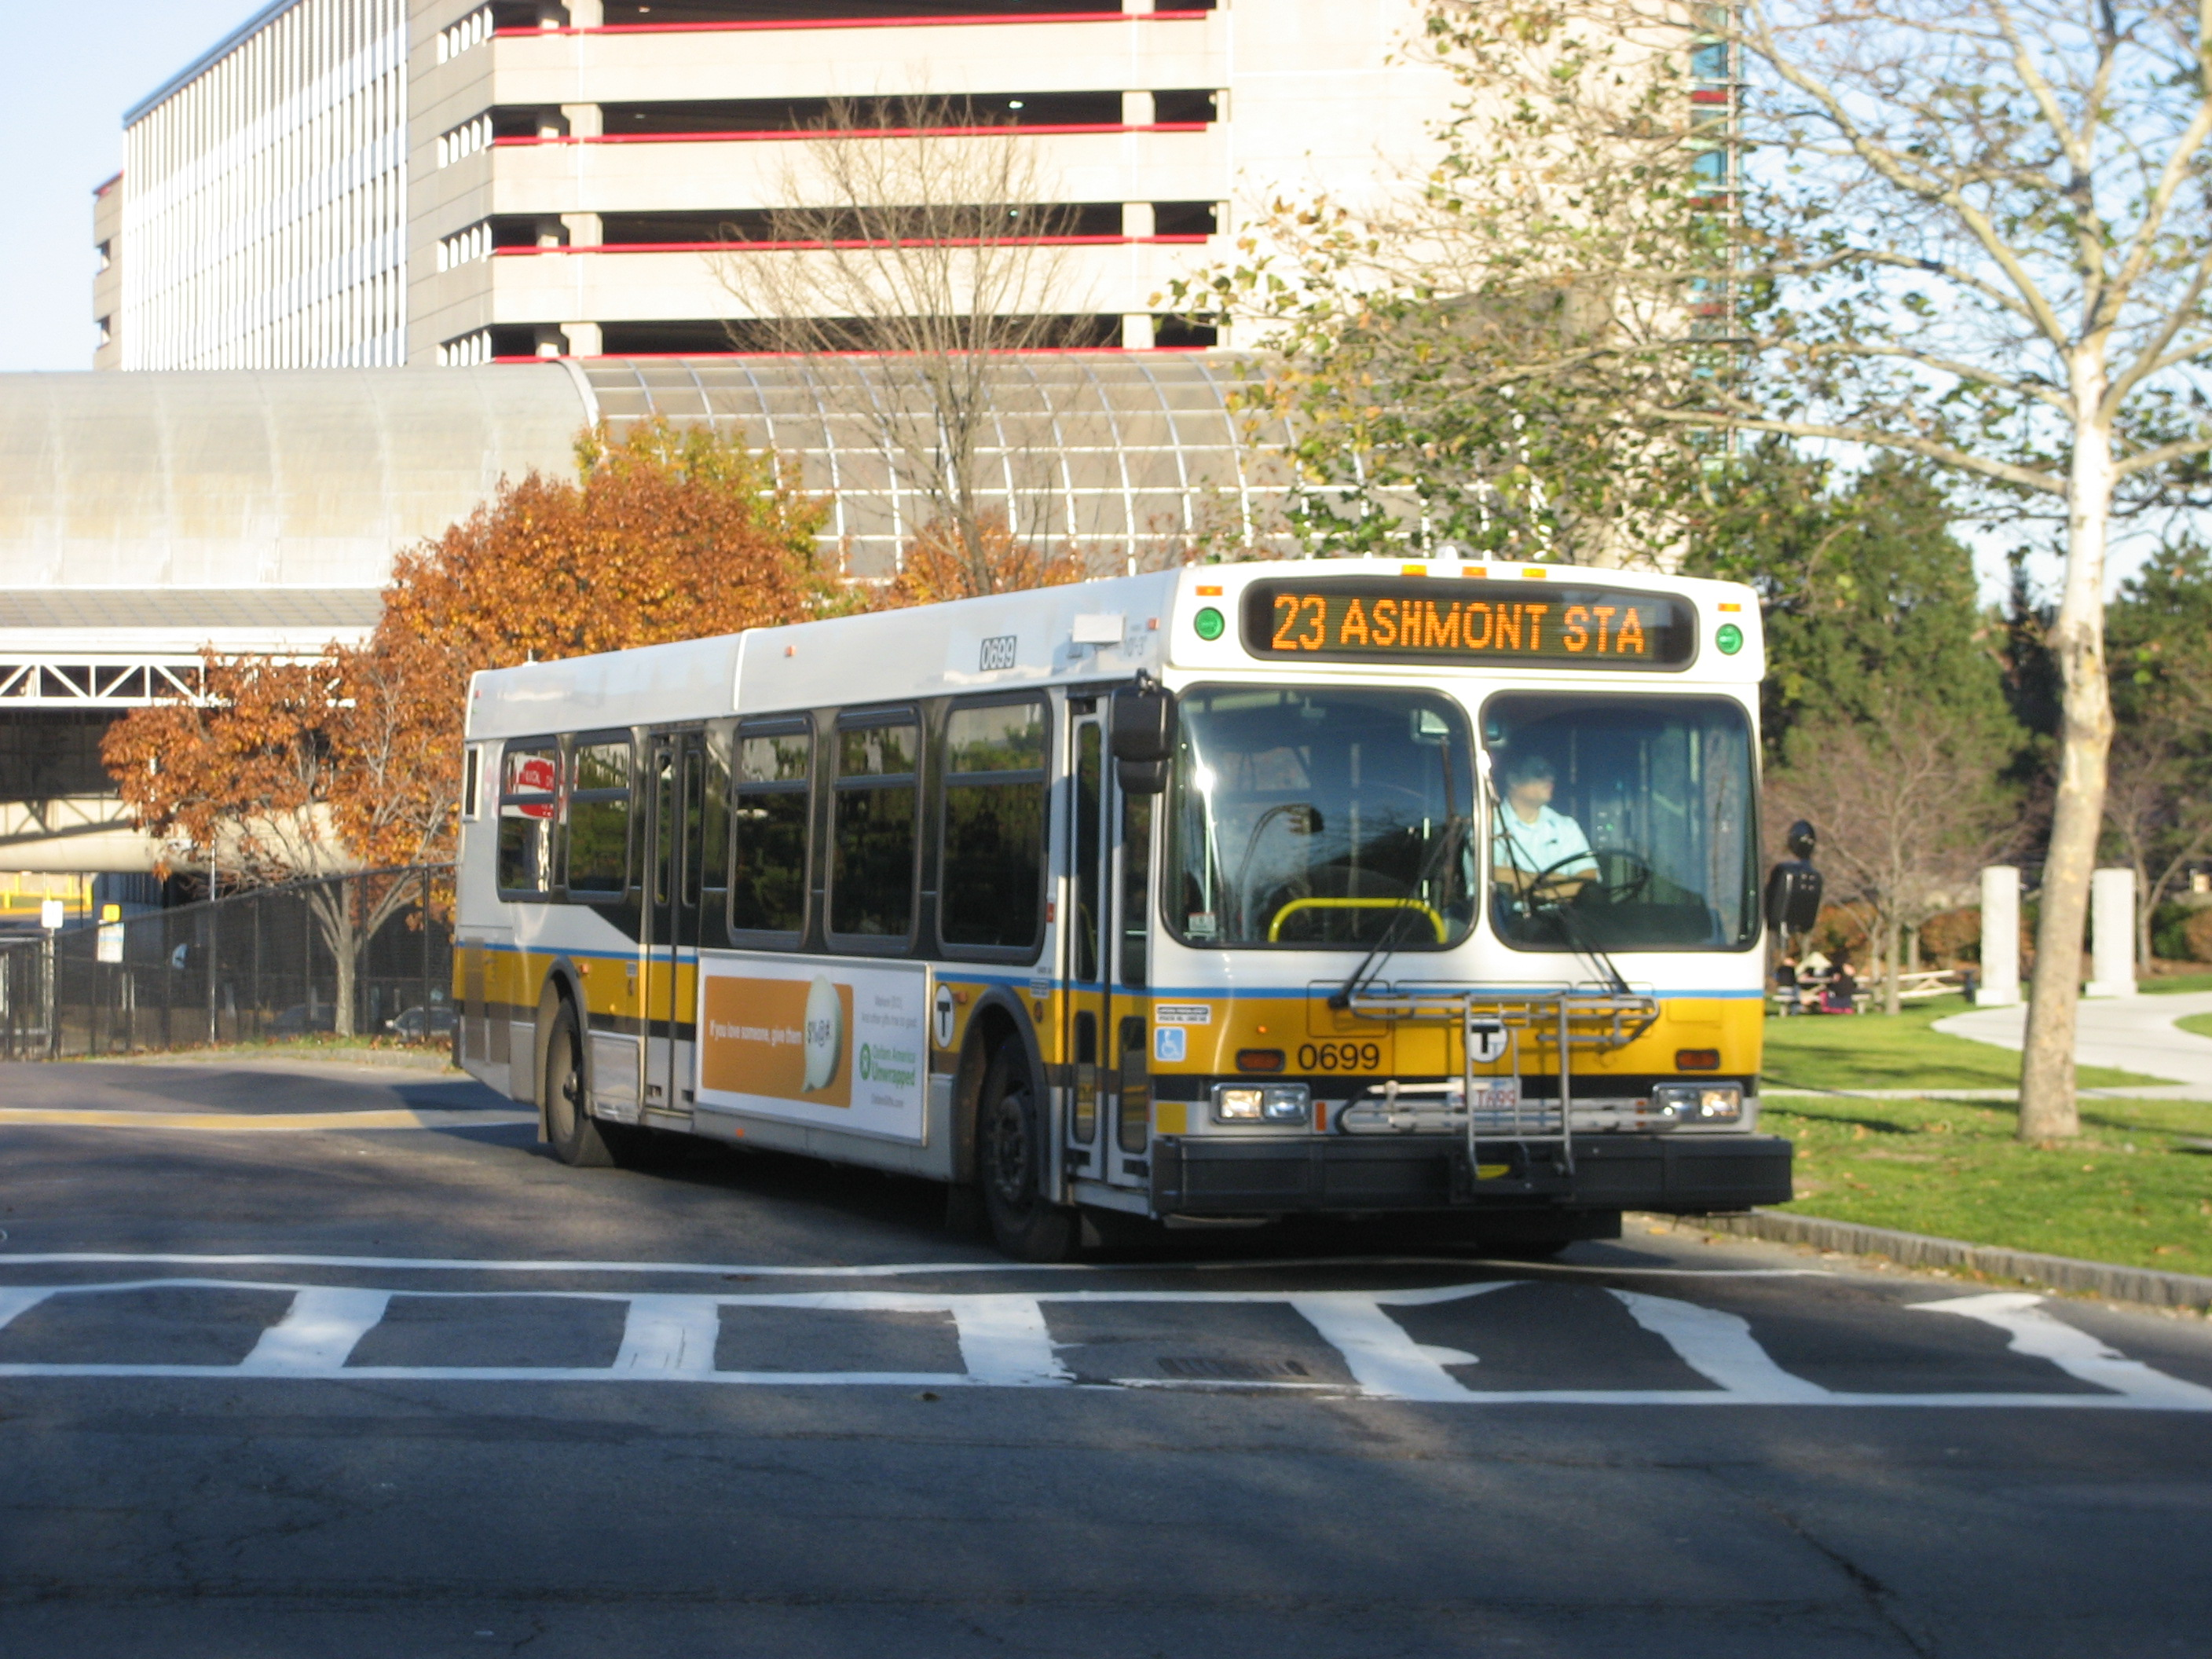 file:mbta bus route 23 - wikimedia commons